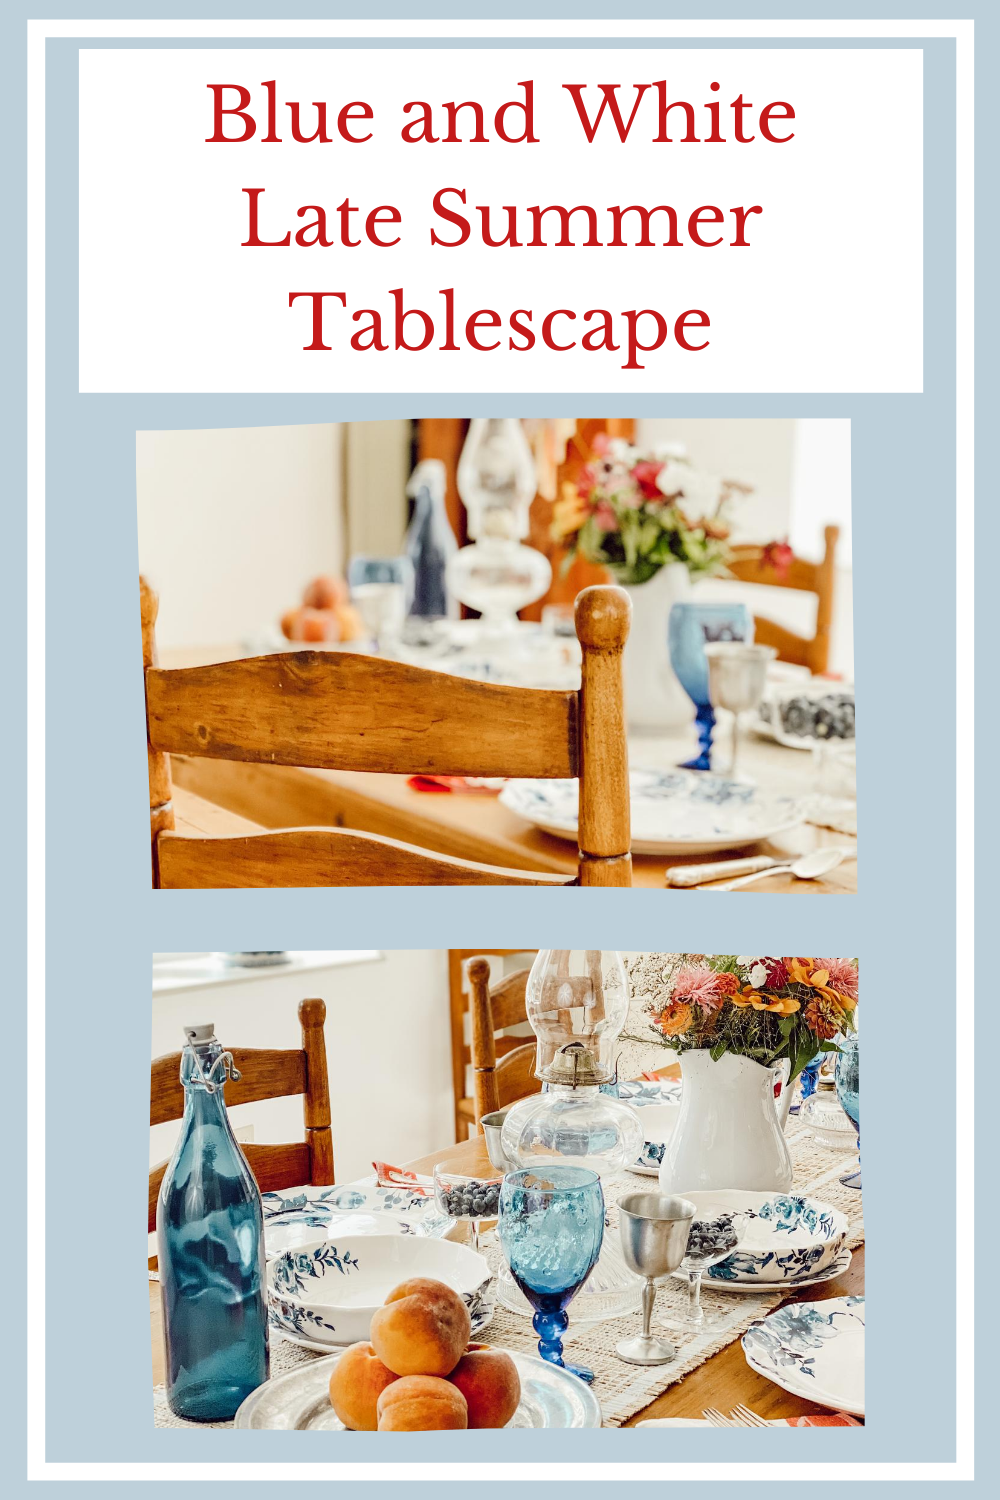 Blue and White Late Summer Tablescape